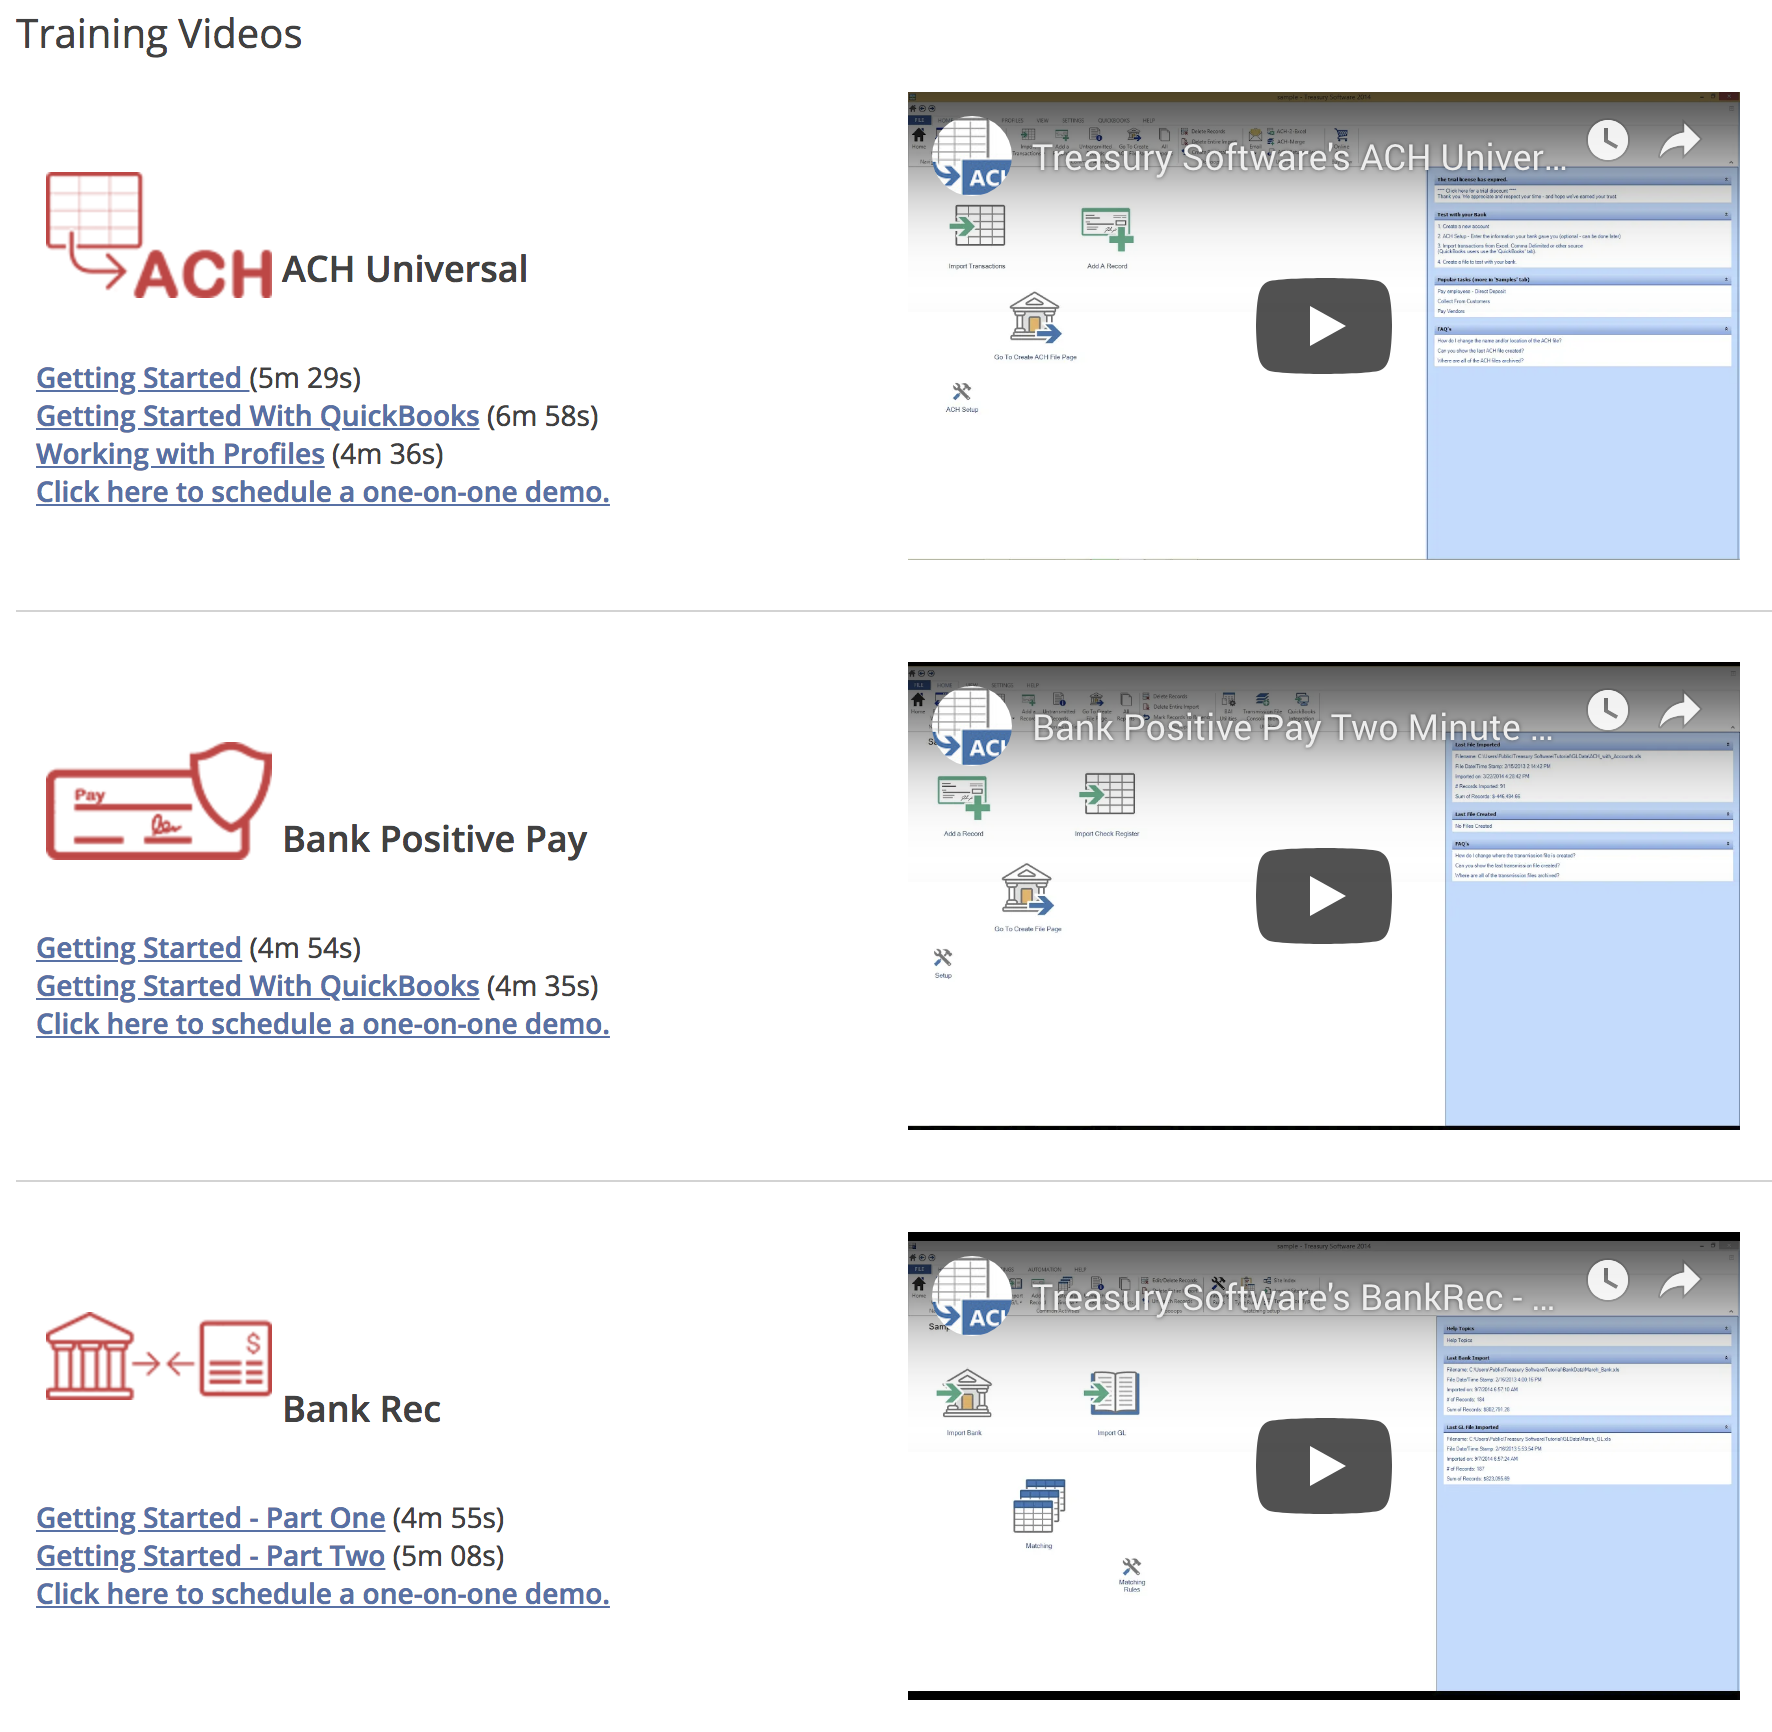 Screenshot of Existing Videos Page